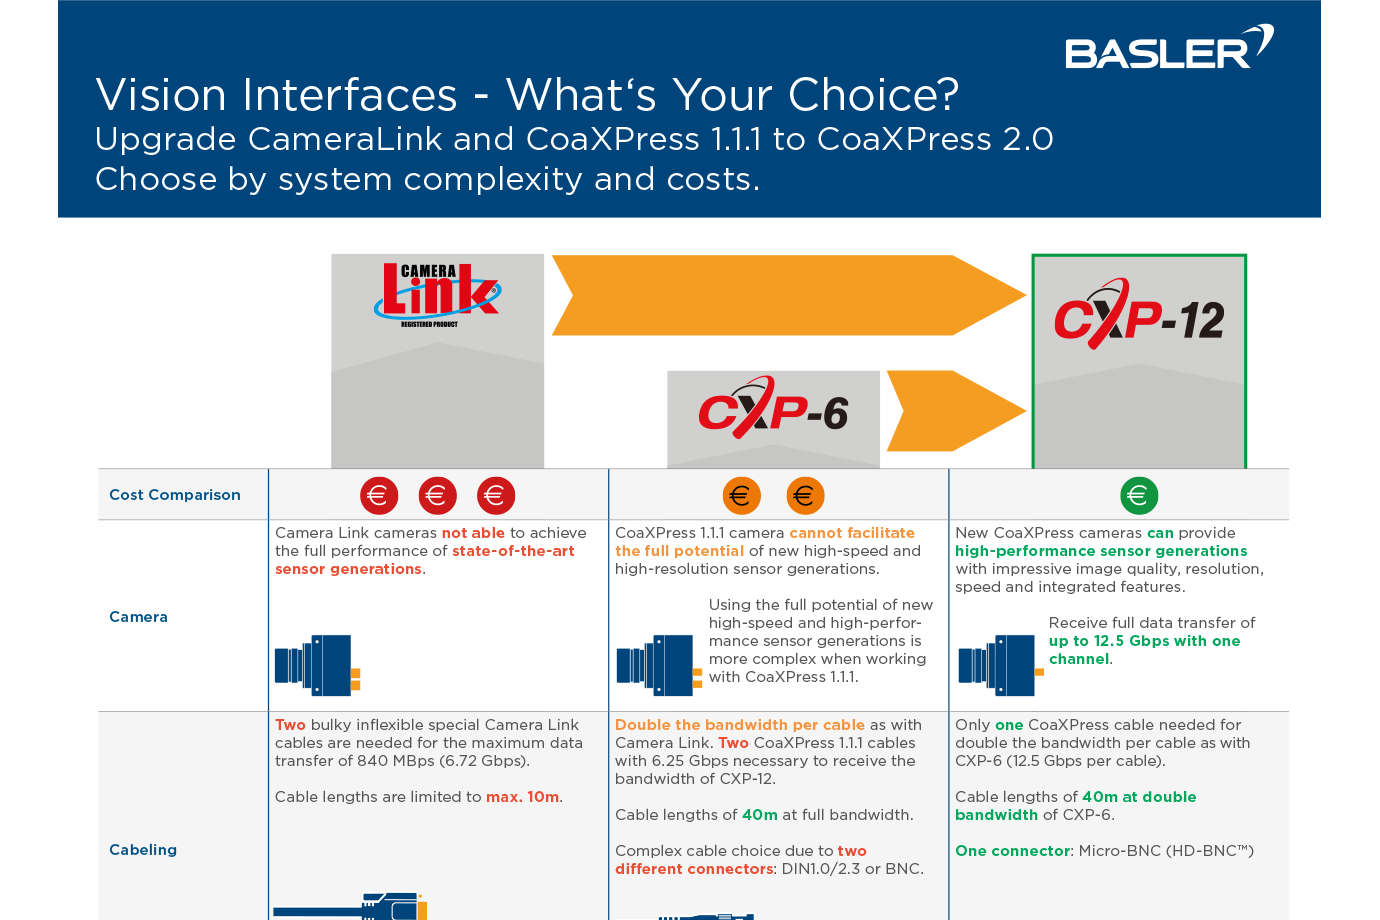 CoaXPress 2.0 system complexity and costs